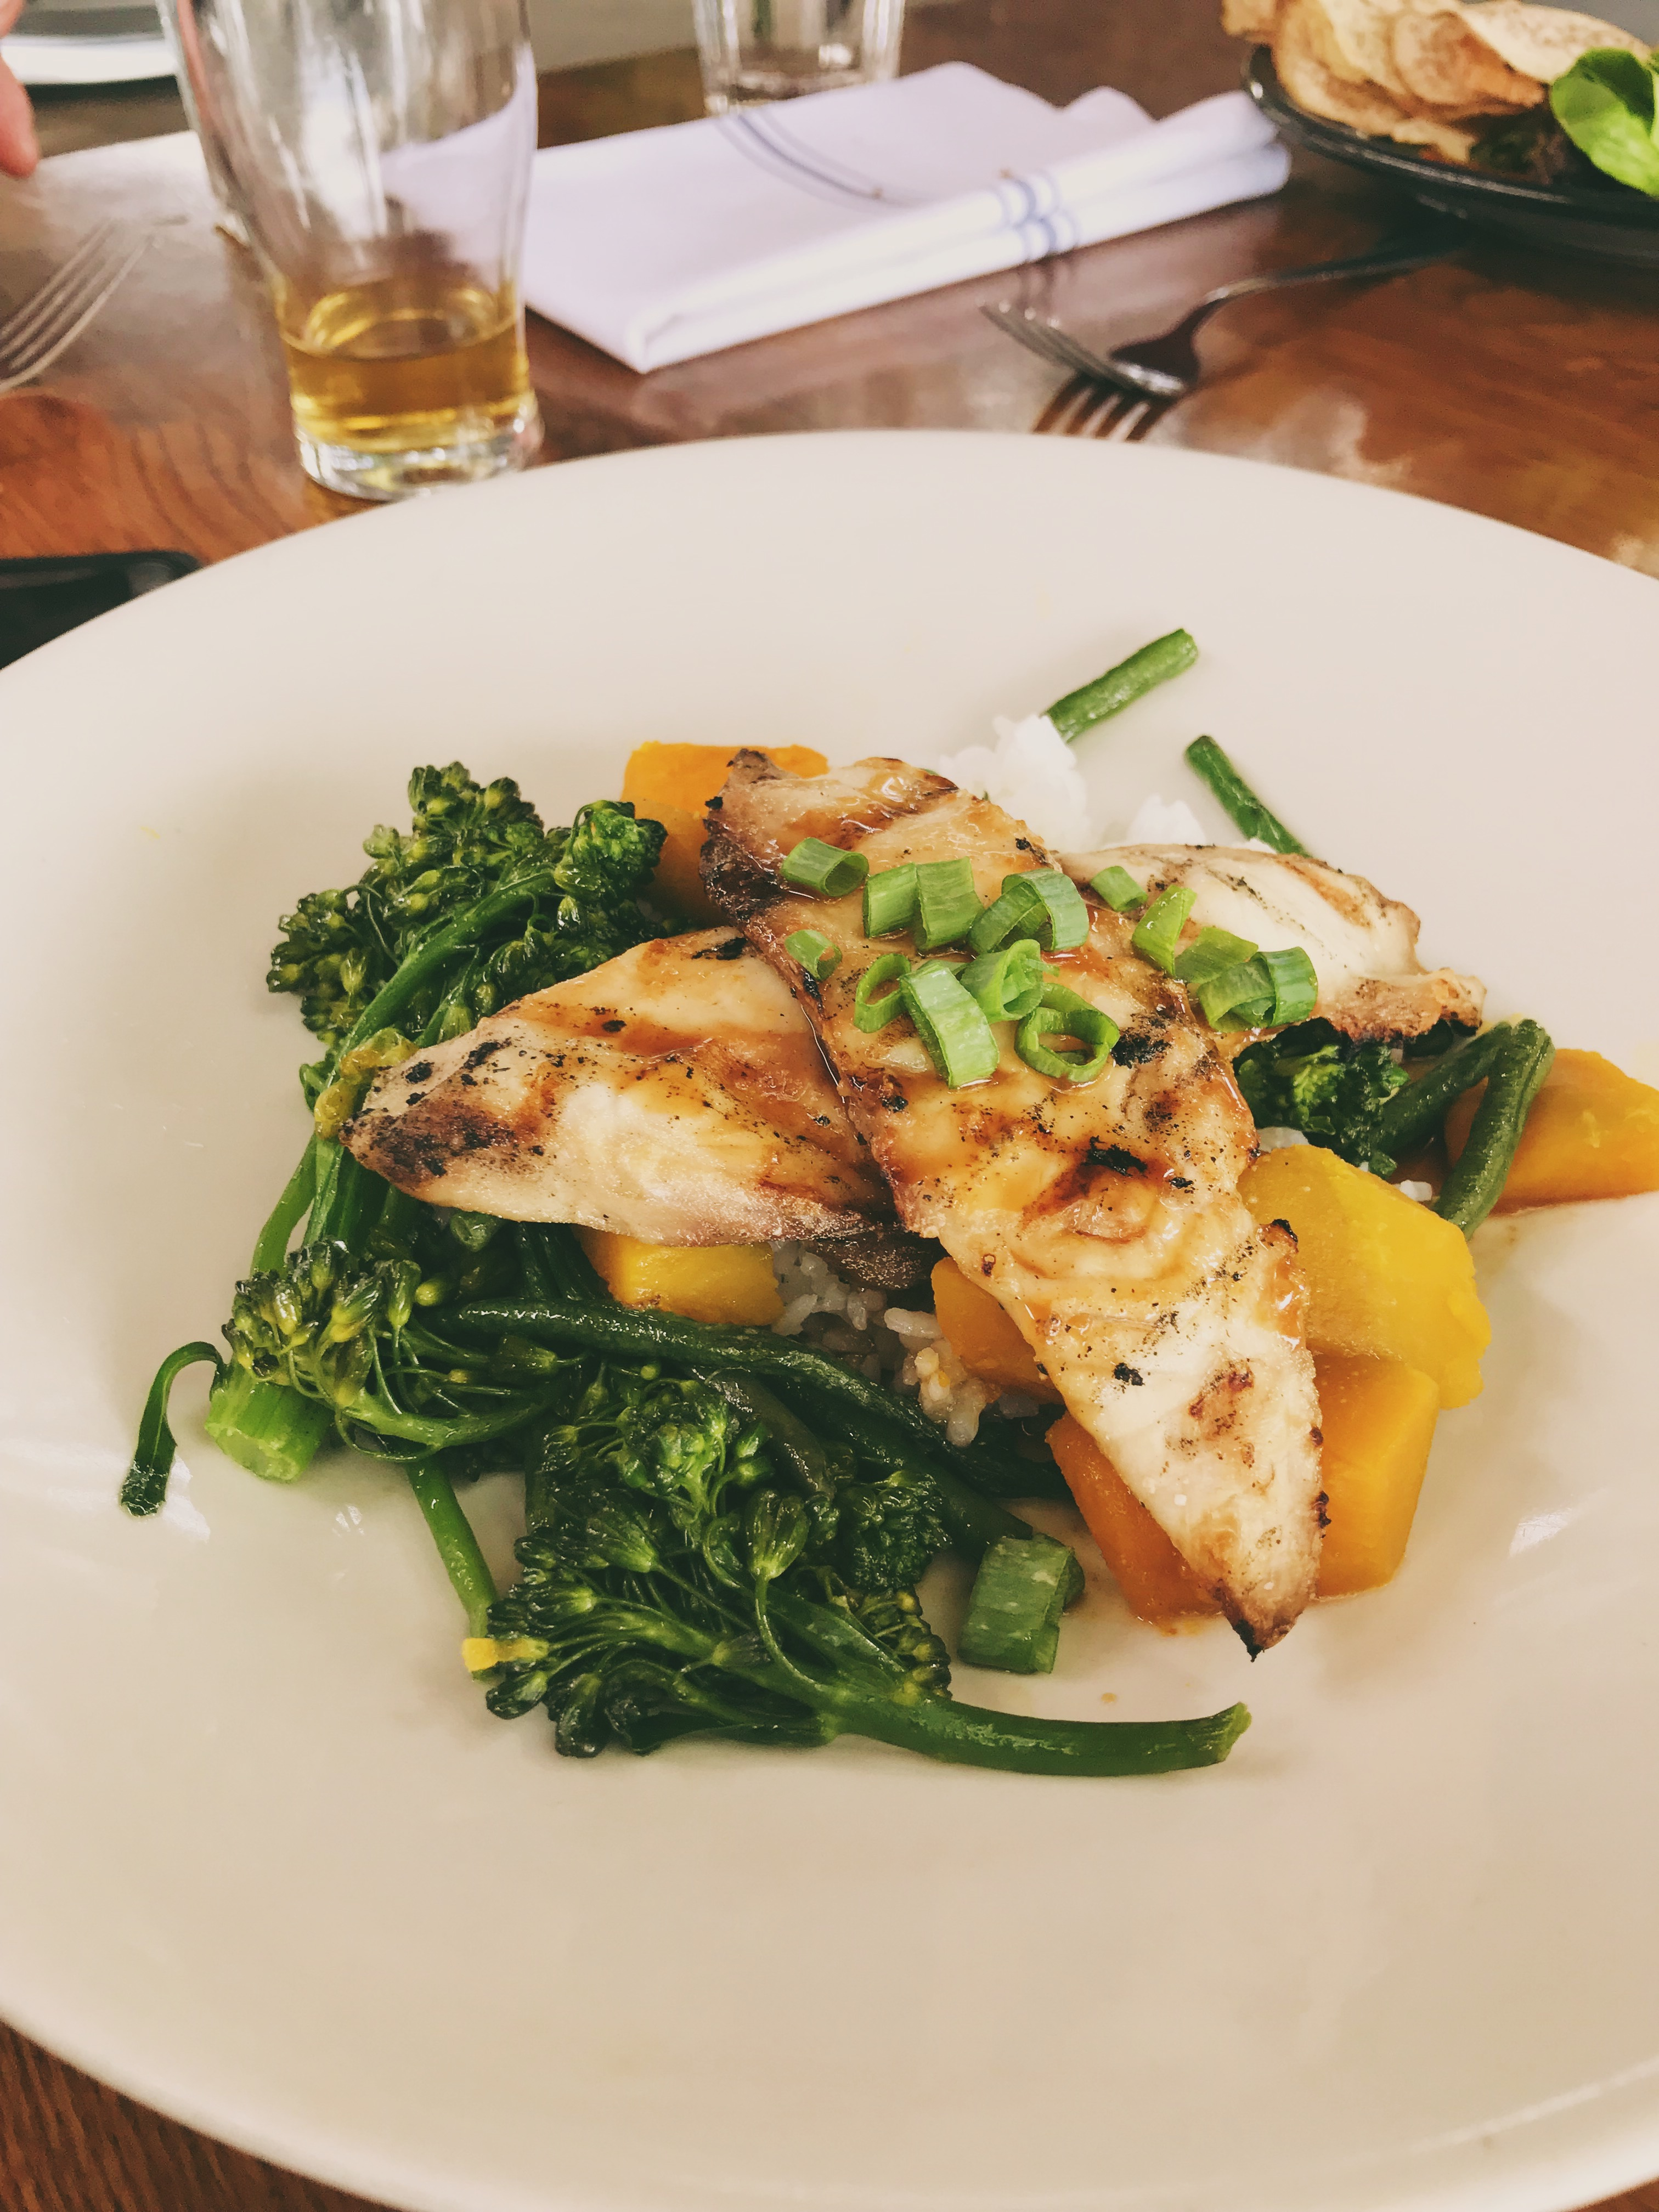 Fresh Mahi Mahi over rice with broccolini & squash